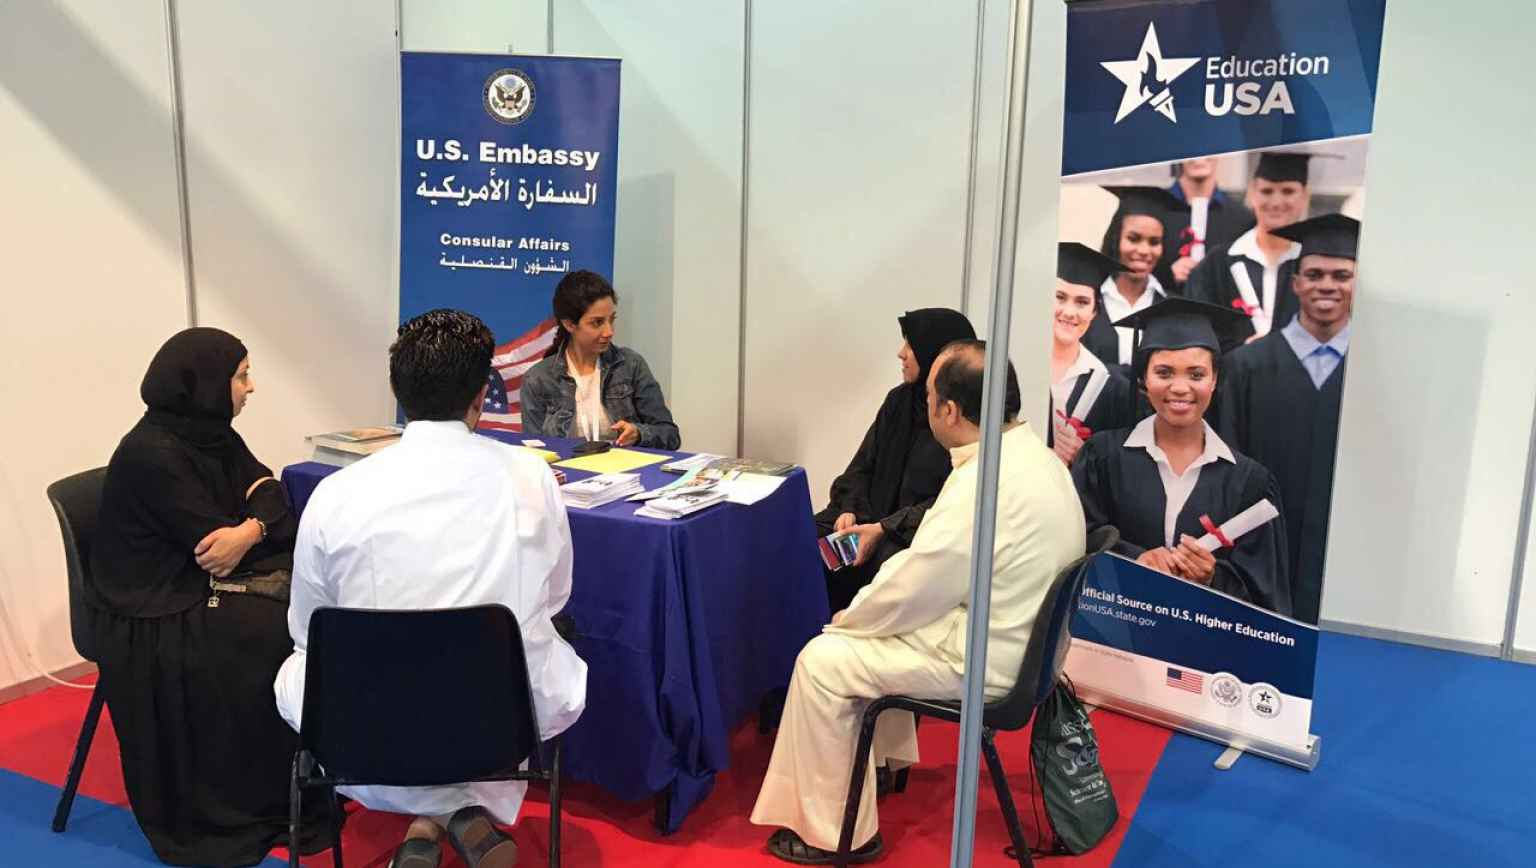 U S  Embassy Kuwait | EducationUSA